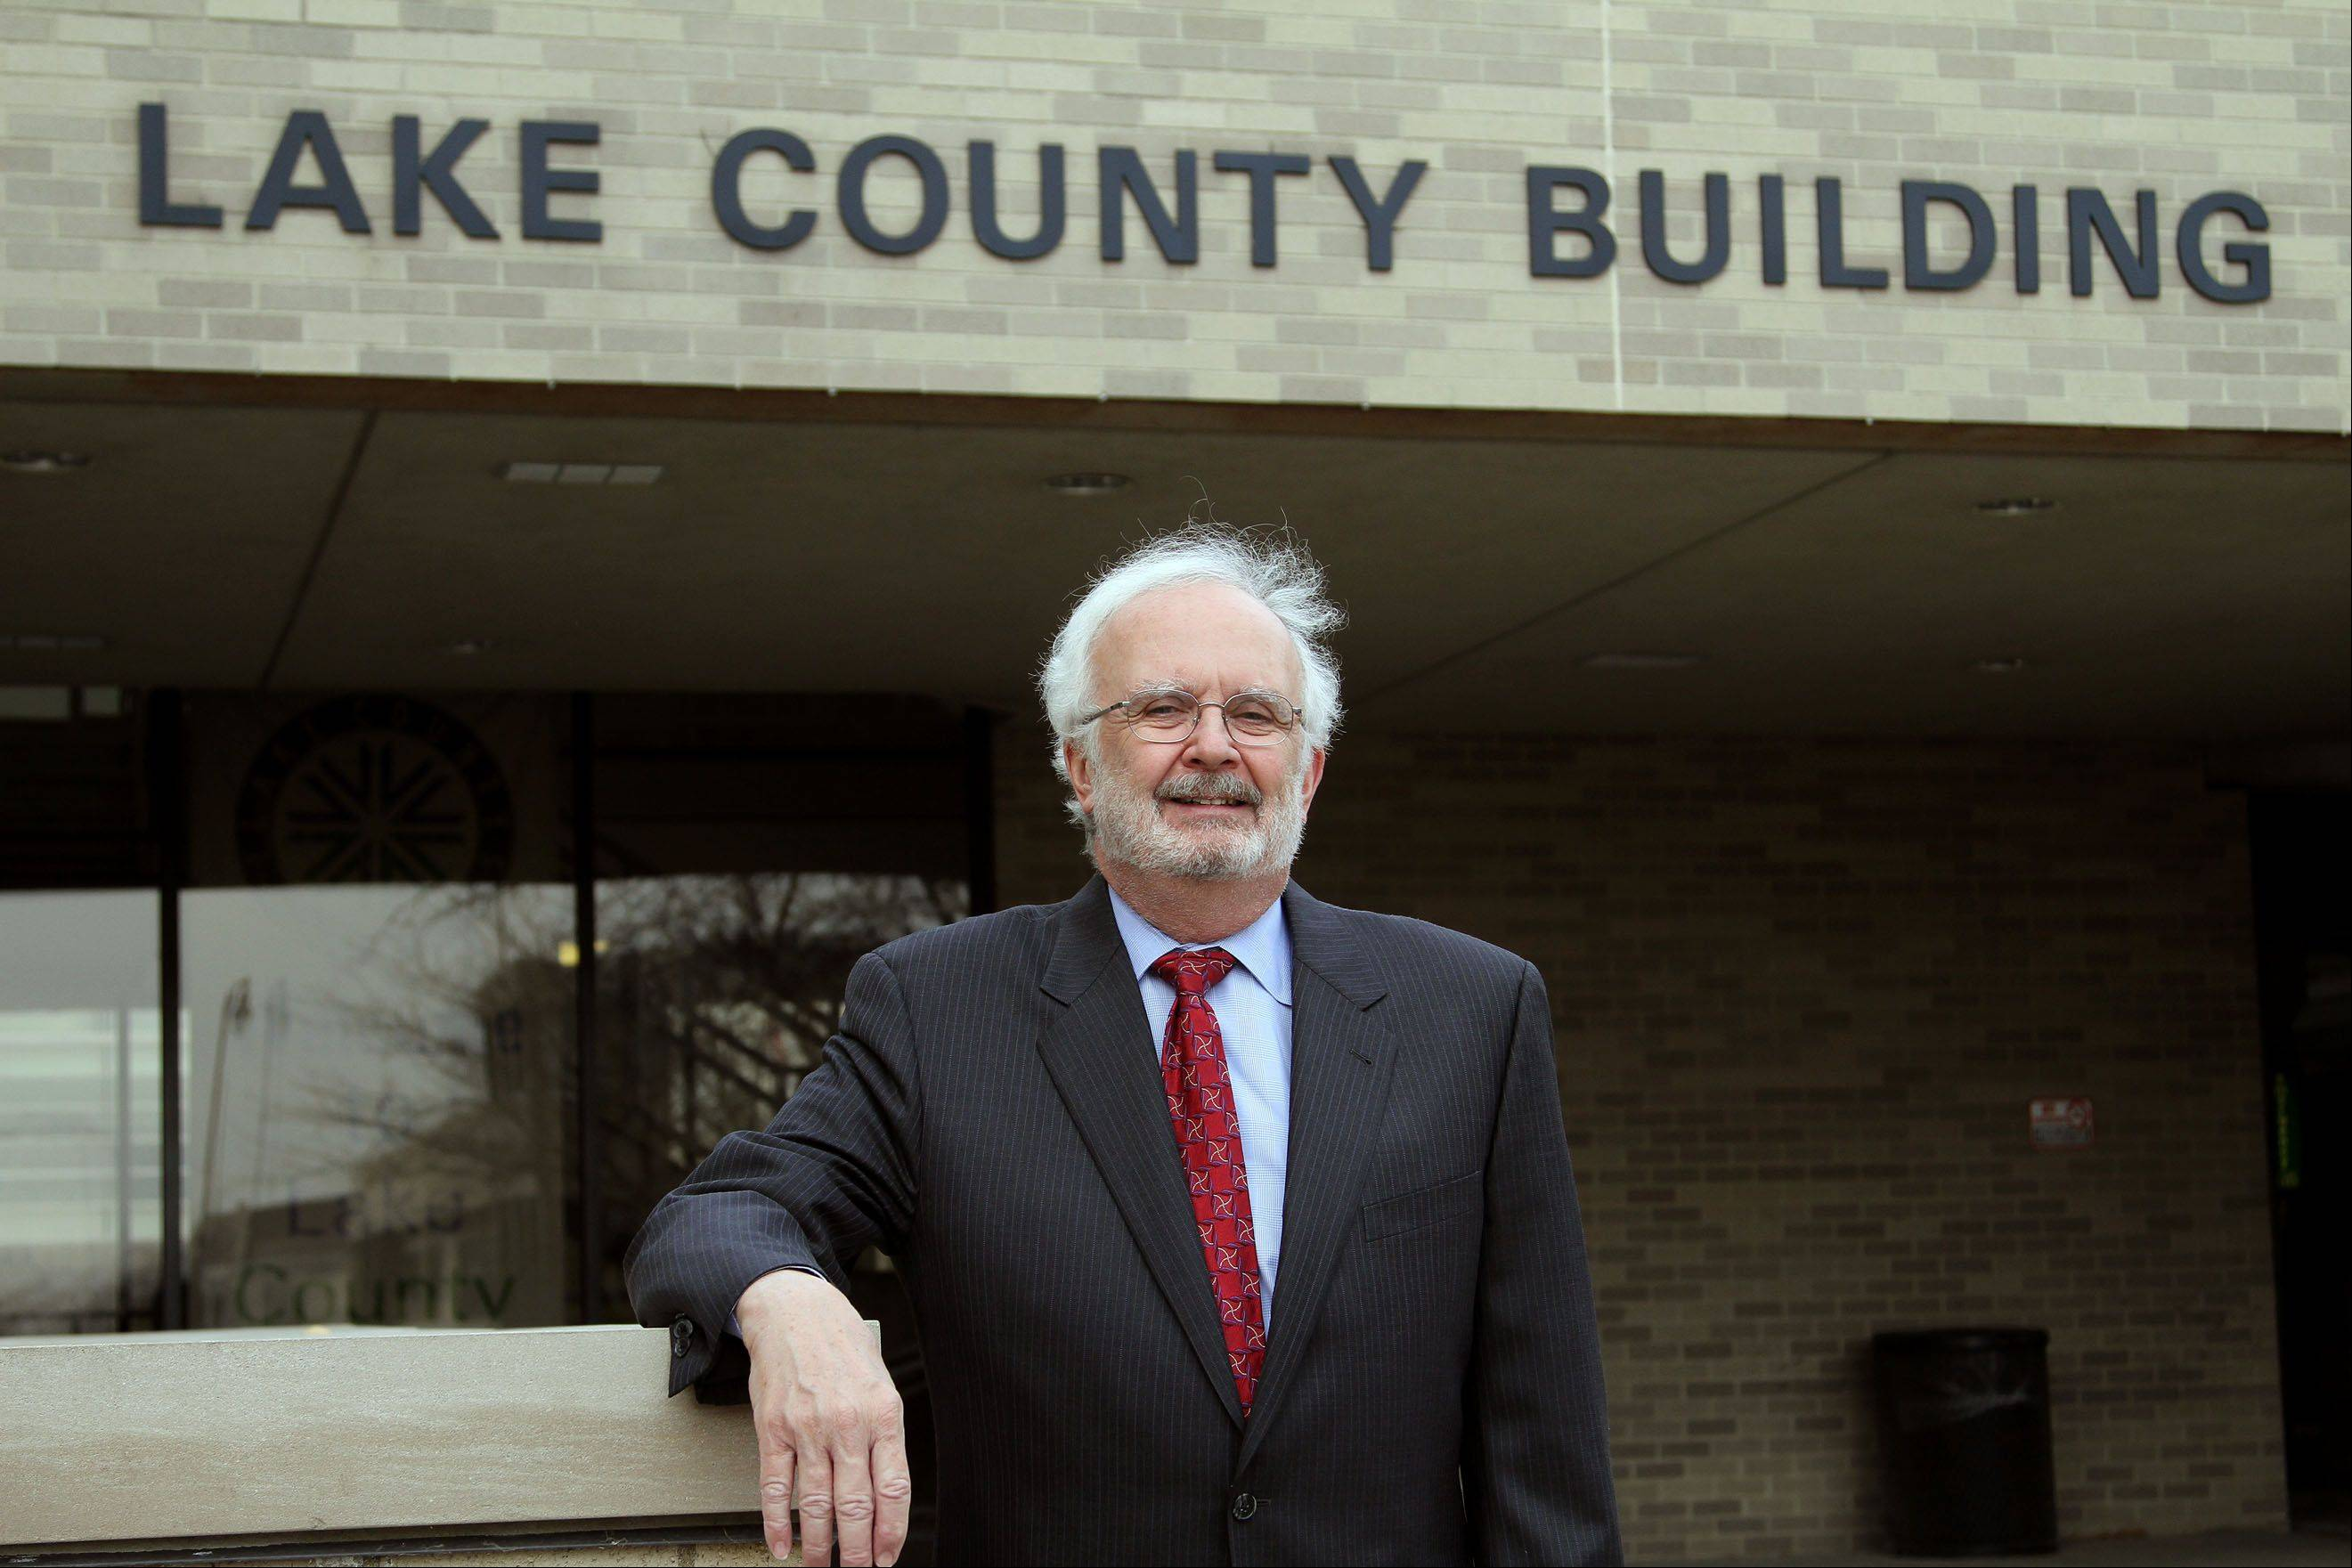 Michael Waller has spent 22 years as the Lake County State's Attorney. Waller is leaving the office in early December of this year.